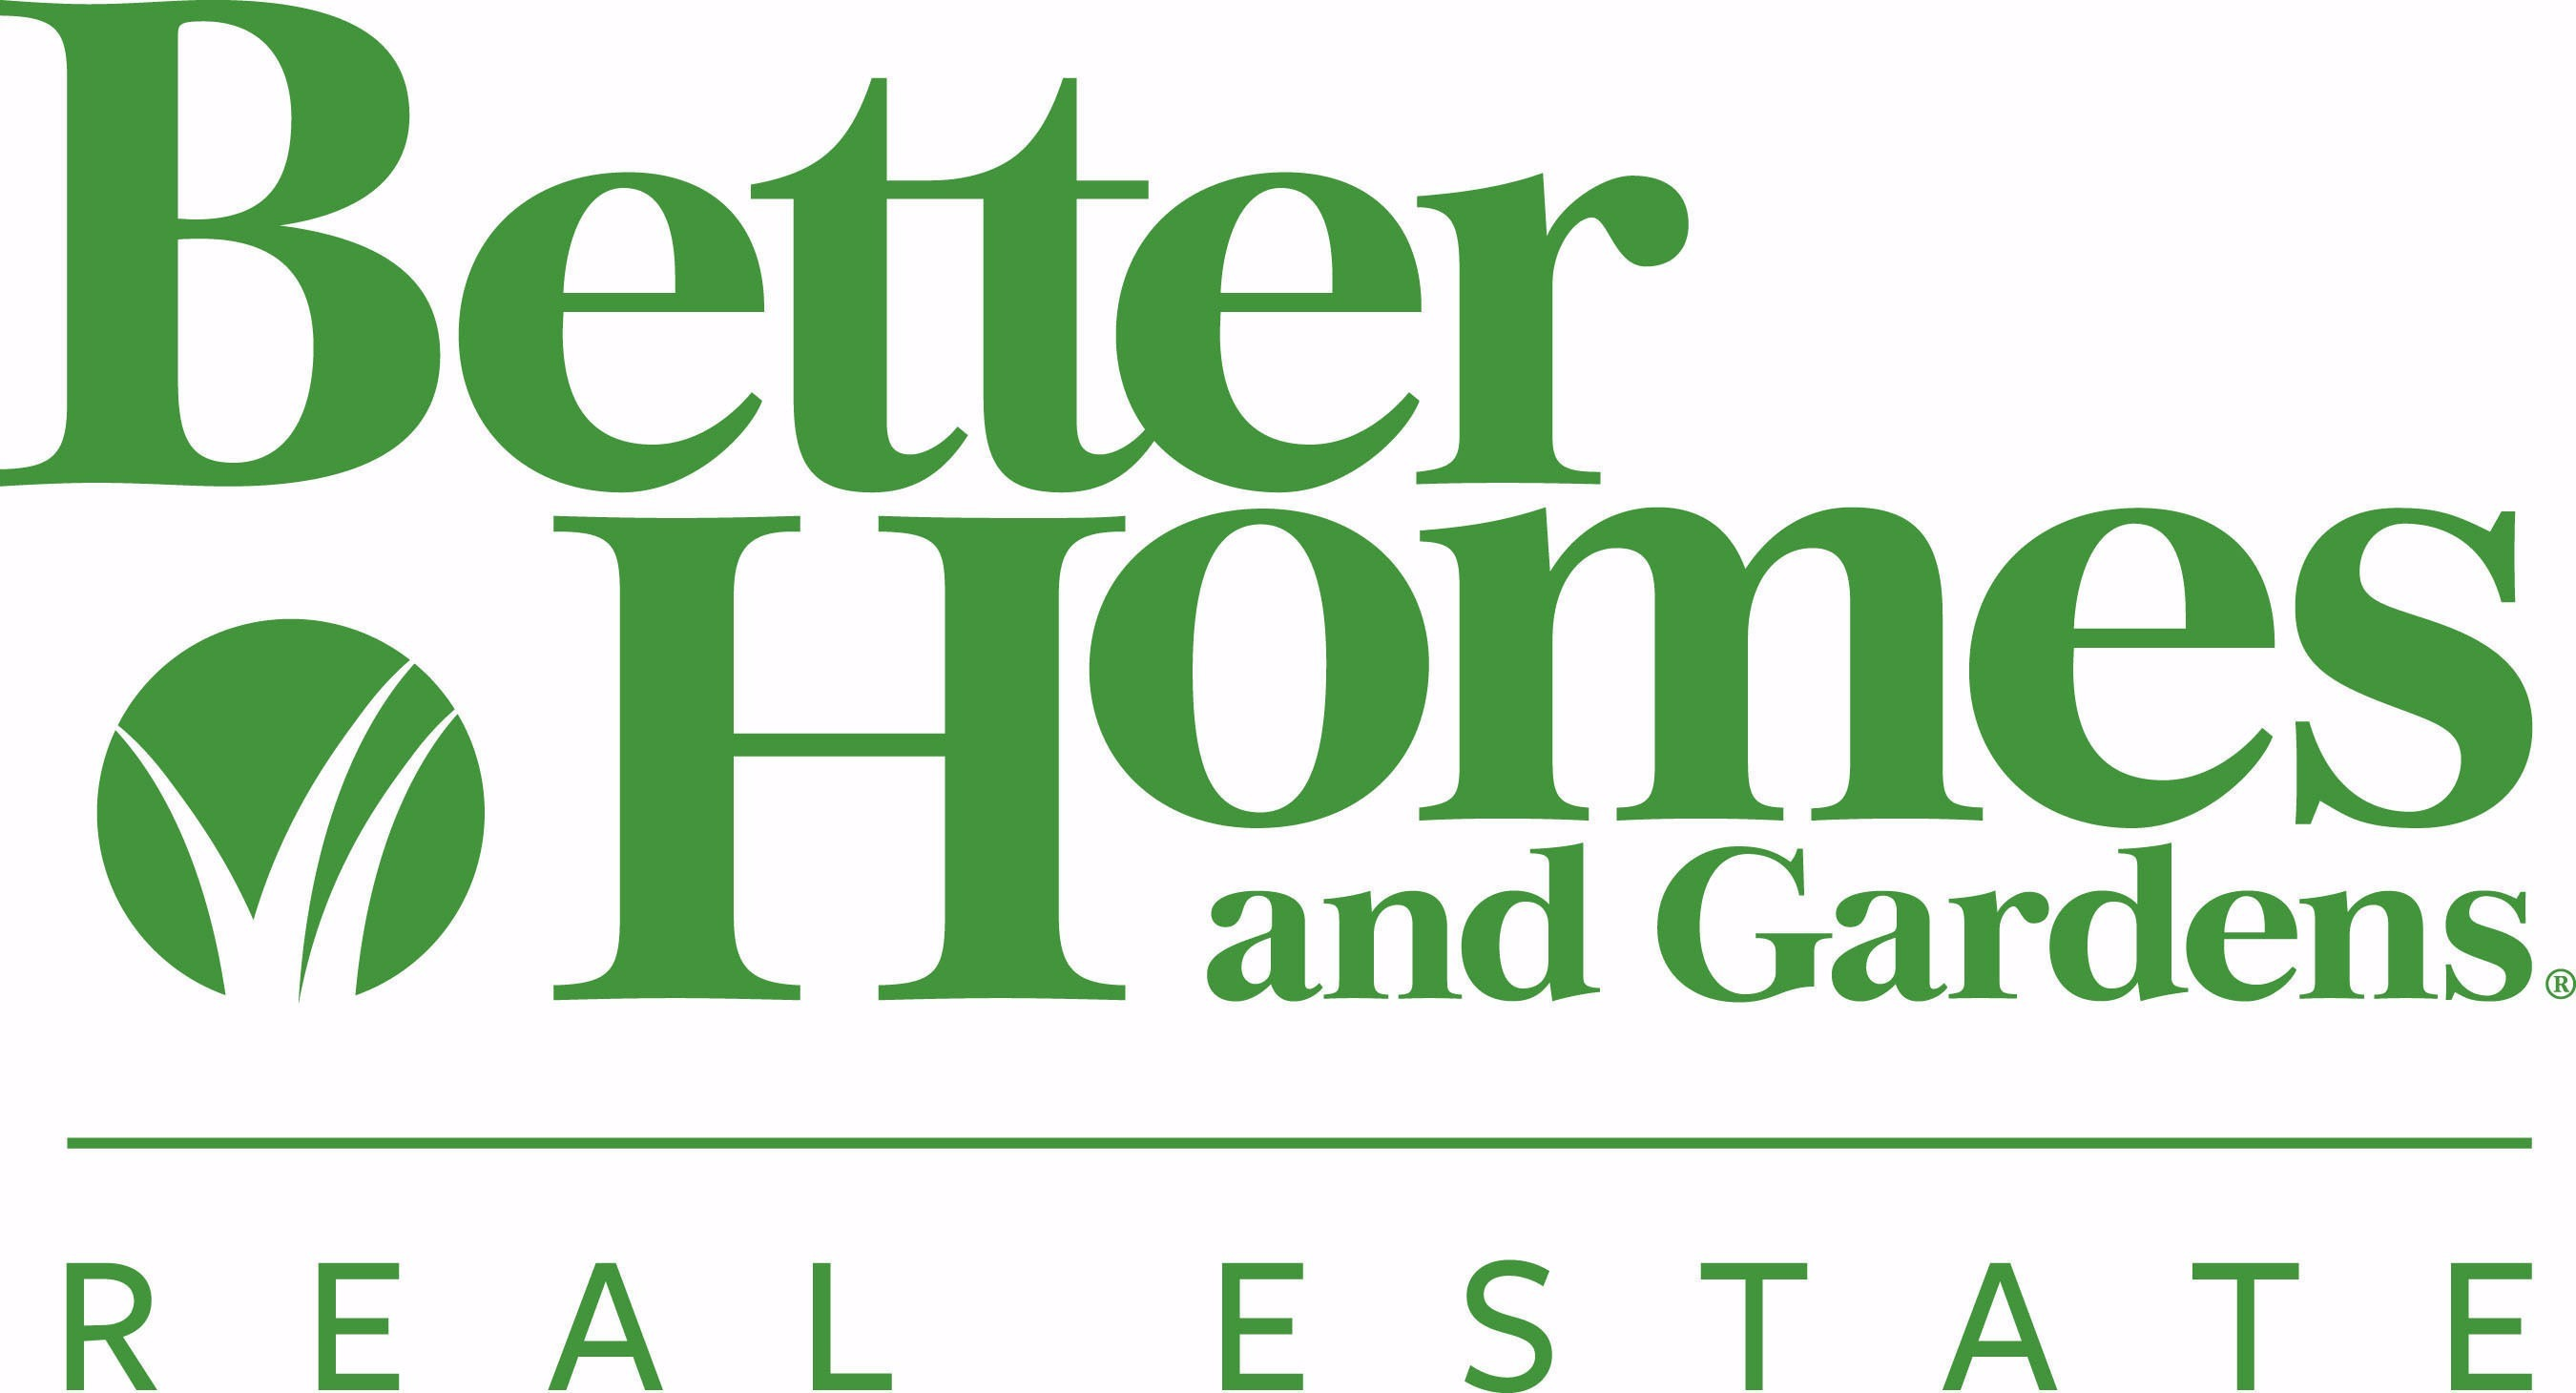 better-home-and-garden-logo